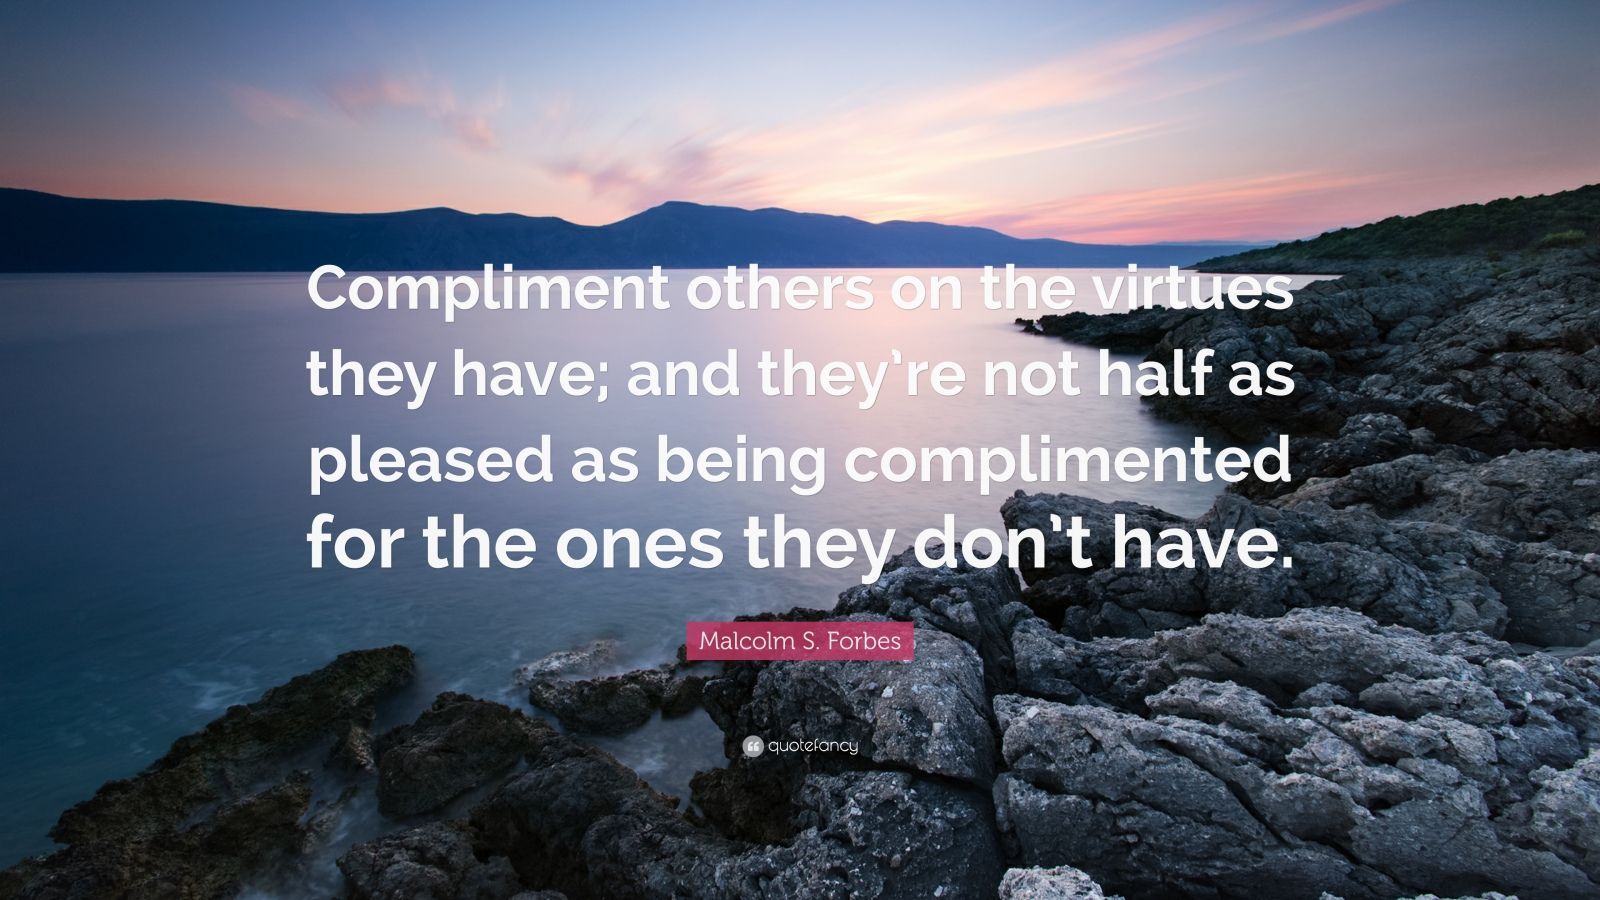 """Malcolm S. Forbes Quote: """"Compliment others on the virtues they have; and they're not half as pleased as being complimented for the ones they don't have."""""""